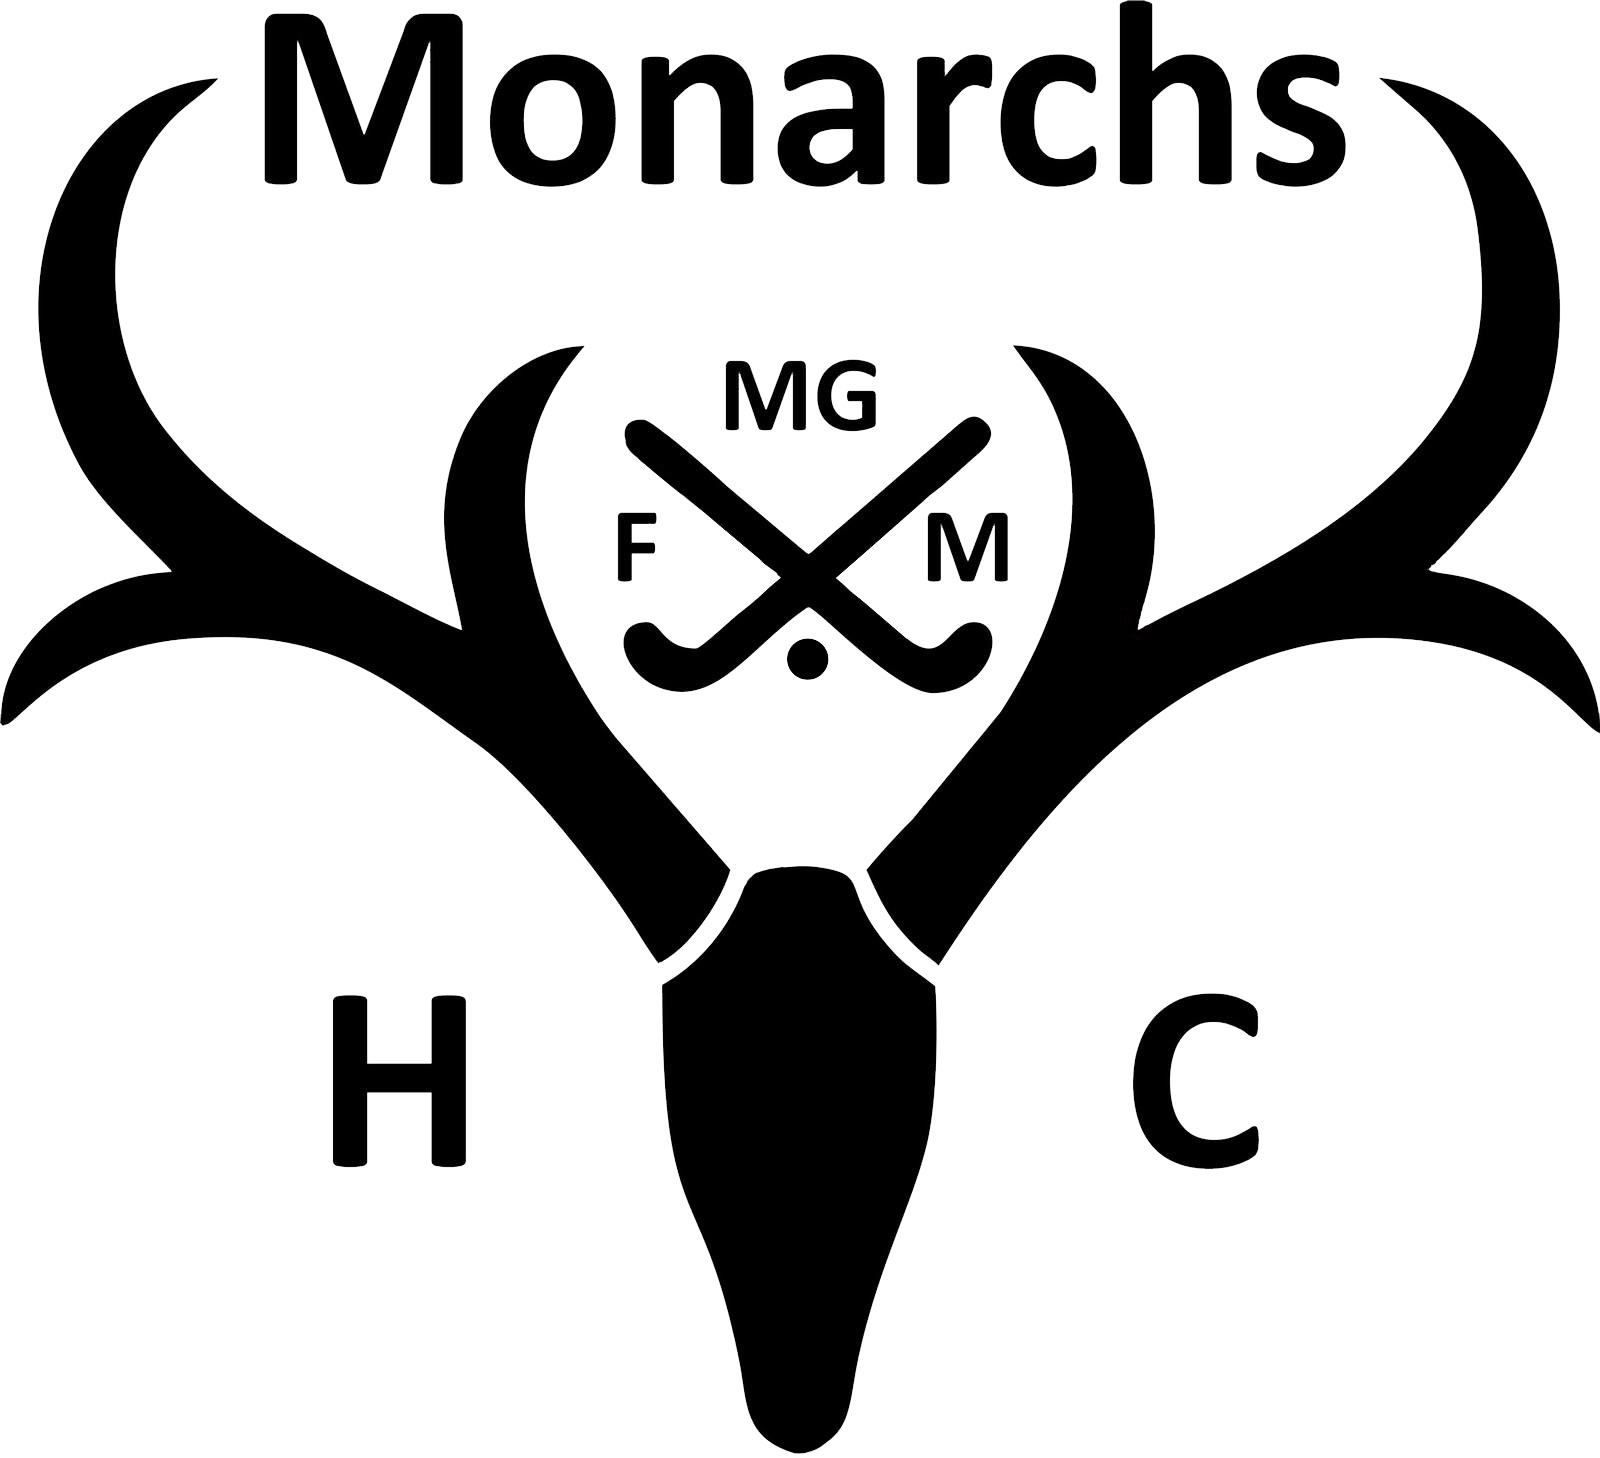 FMGM Monarchs Hockey Club Ladies 1